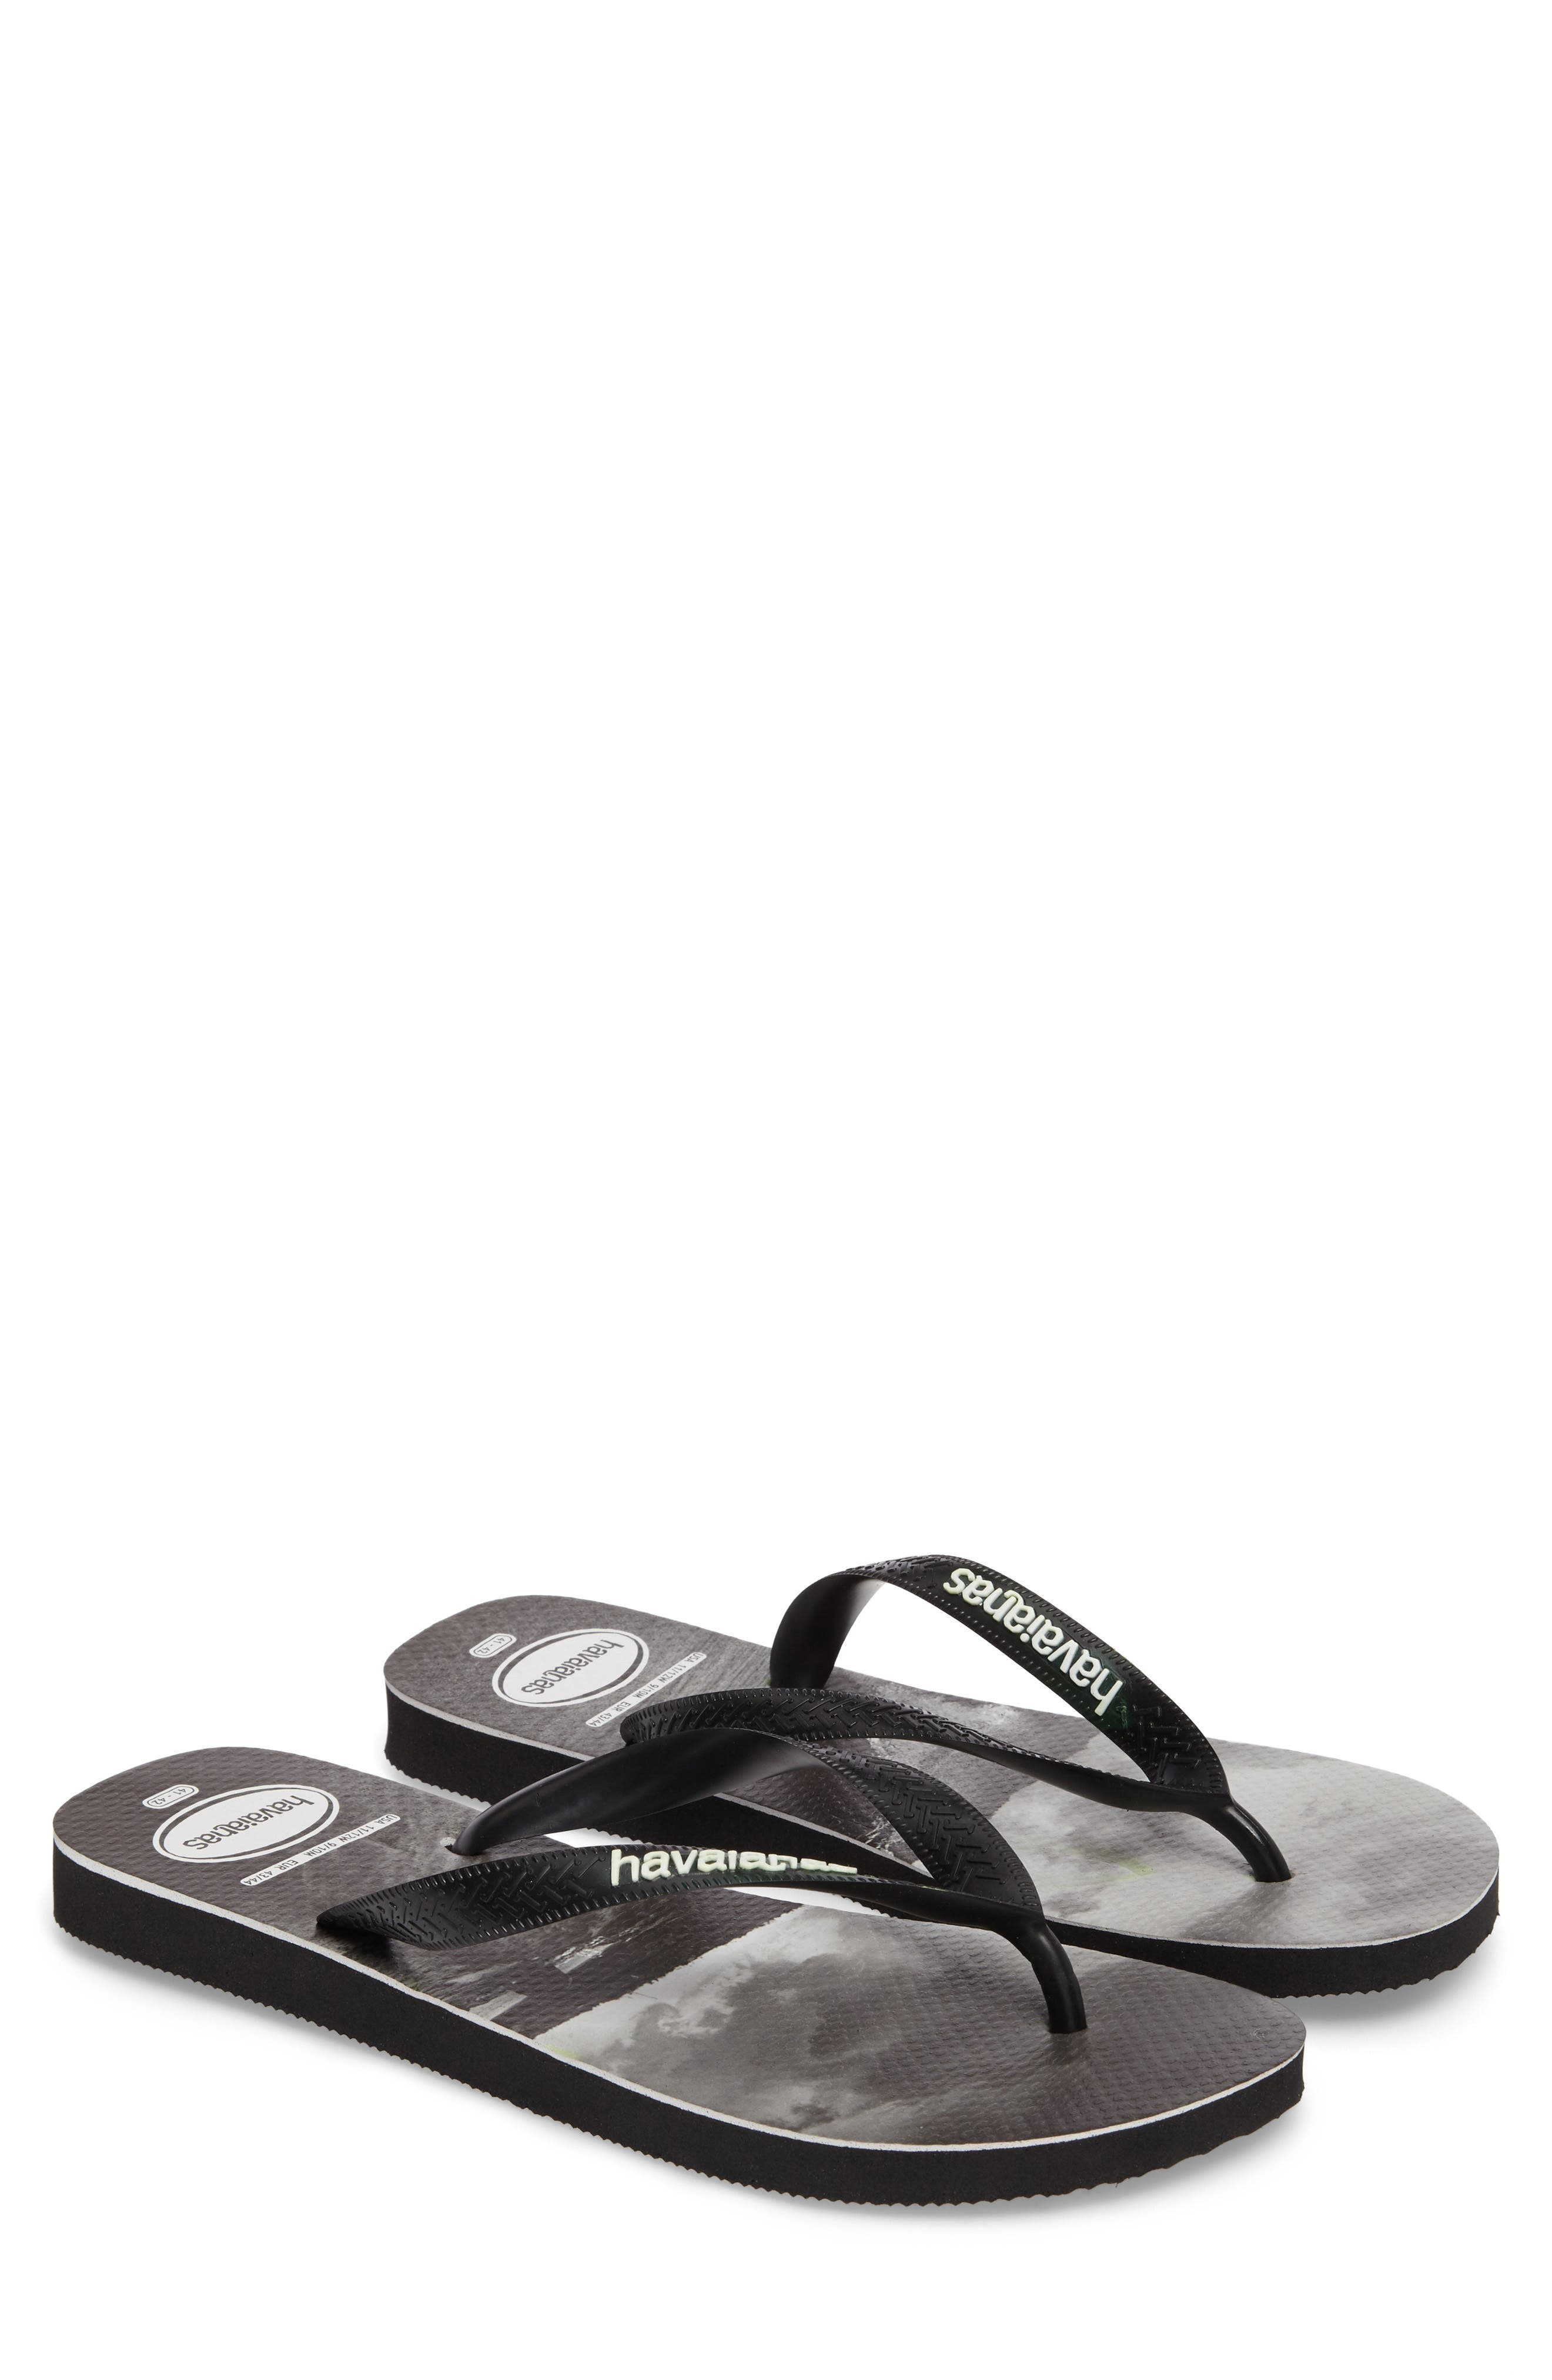 Havaianas Top Photo Print Flip Flop (Men)